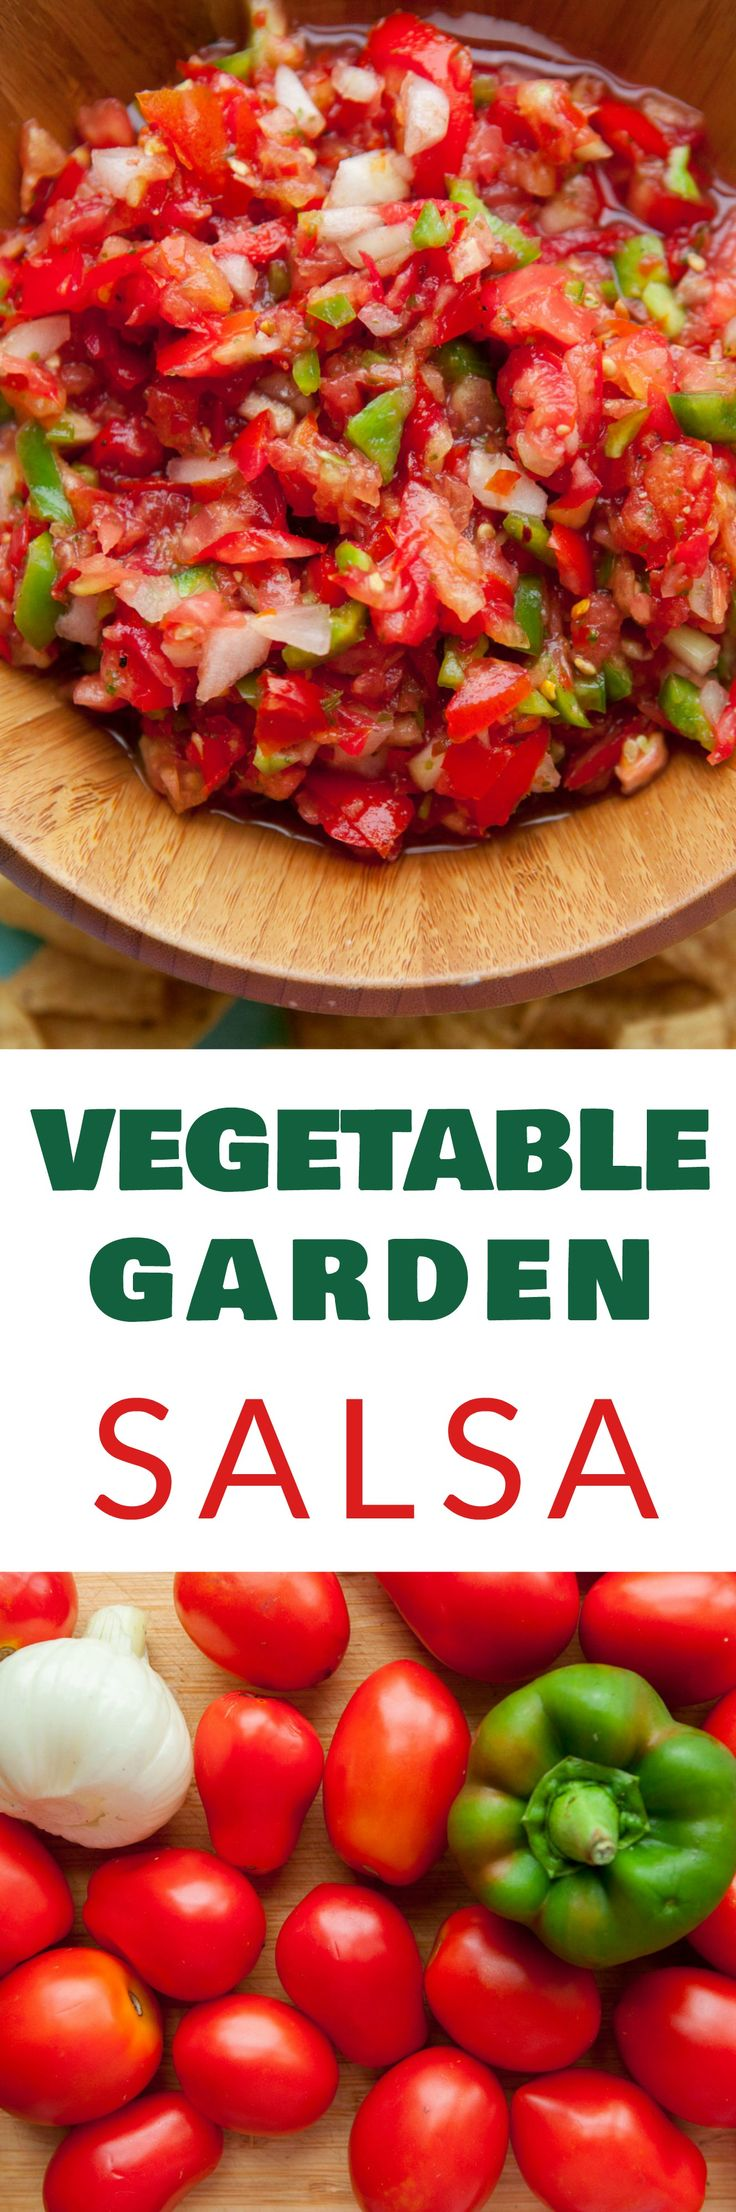 SUPER FRESH Vegetable Garden Salsa straight from your garden! This easy HOMEMADE recipe is made in minutes filled with tomatoes, onion, peppers, cilantro, and red pepper flakes! Friends BEG for me to make this salsa because it's everyone's favorite! Serve with Chips or with your next Mexican meal!